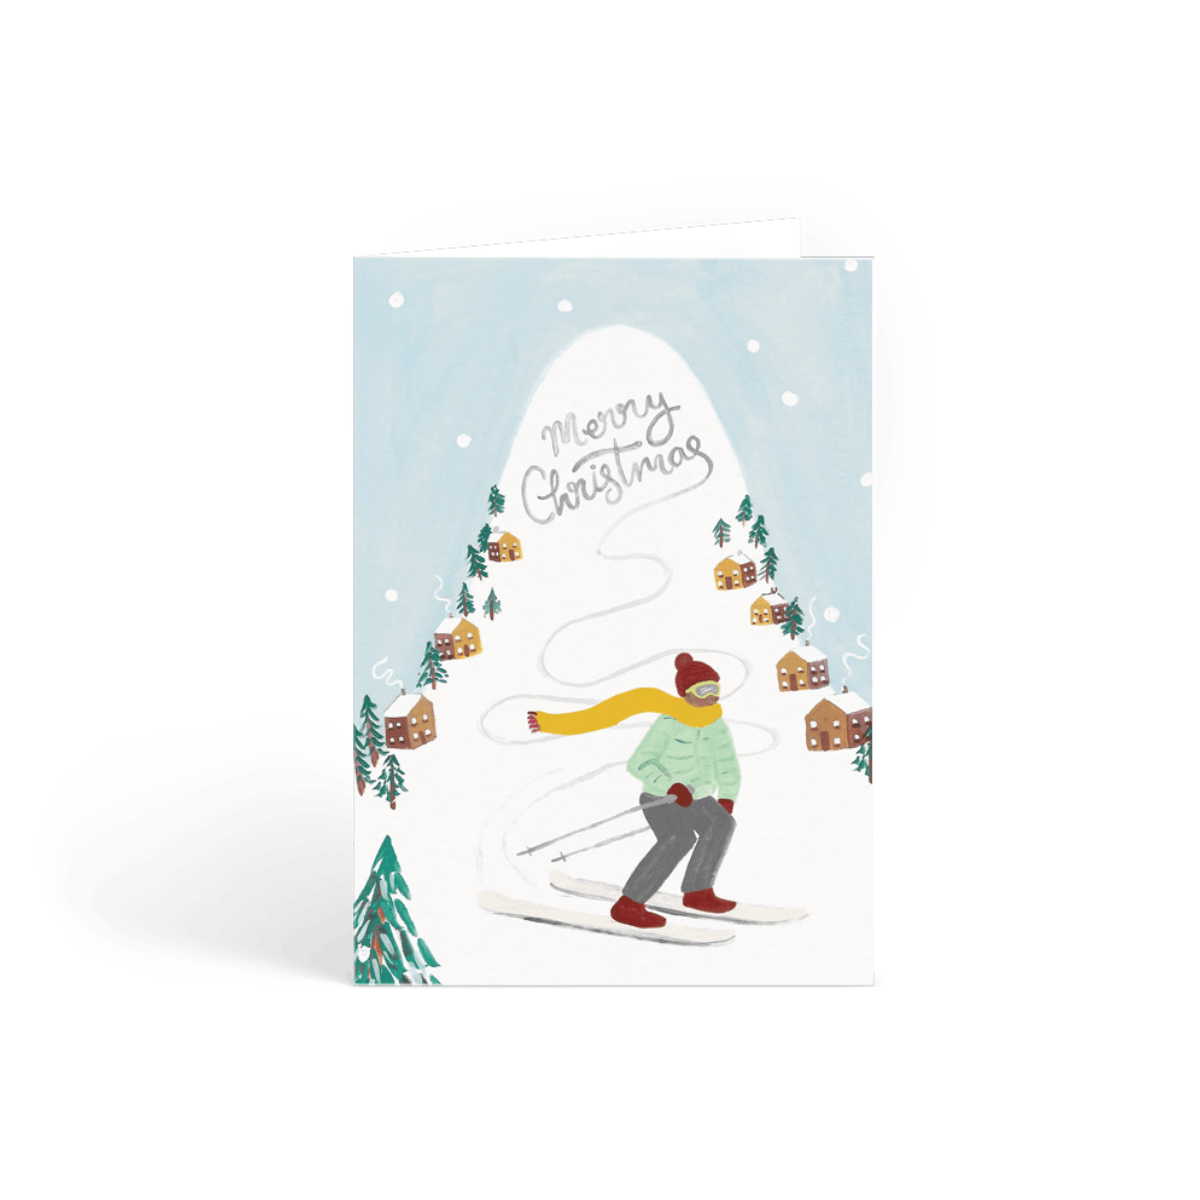 Https%3a%2f%2fwww.papier.com%2fproduct image%2f24775%2f2%2fchristmas skier 6186 front 1541091343.png?ixlib=rb 1.1